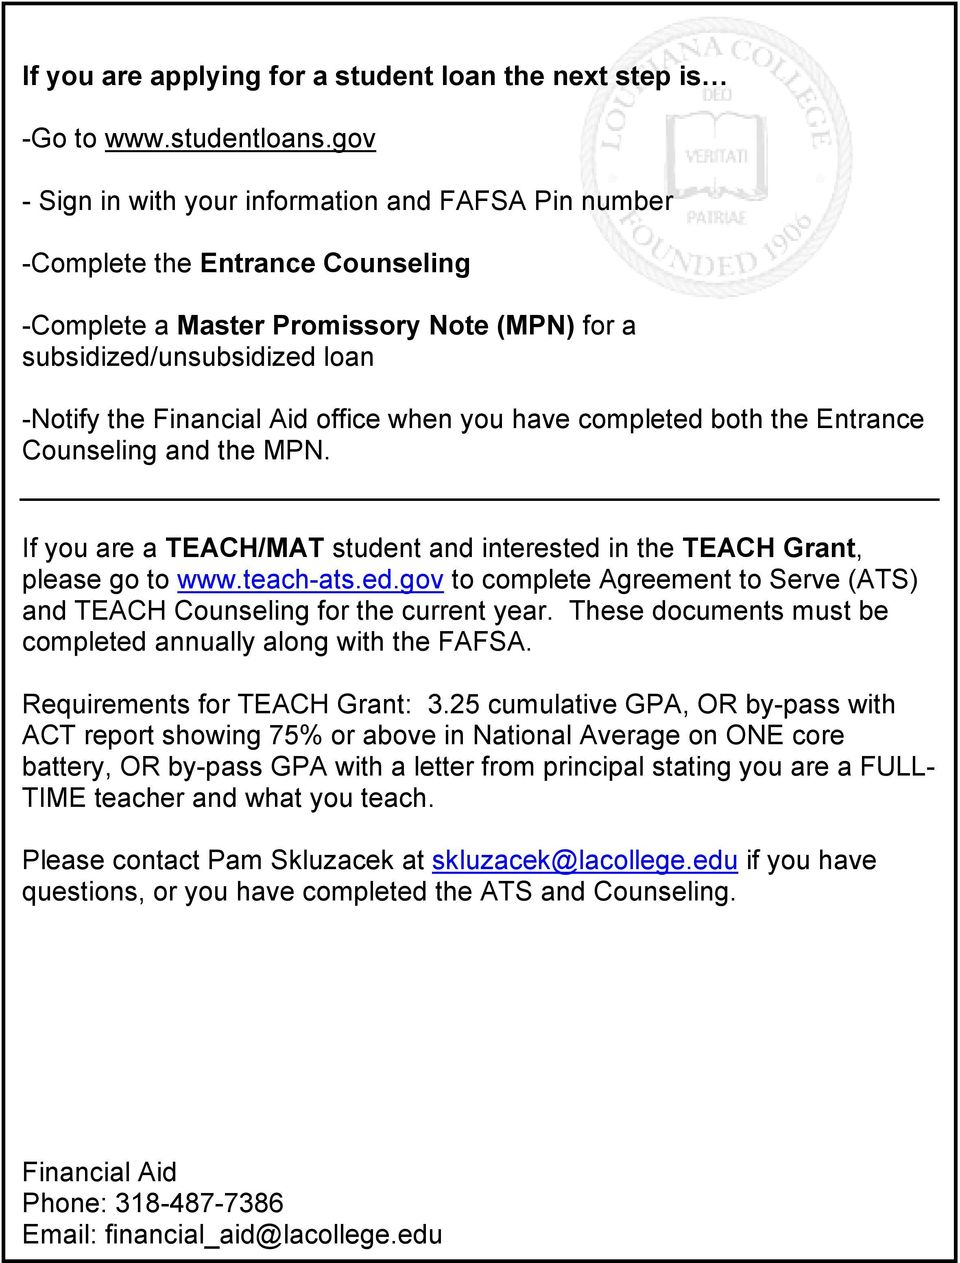 when you have completed both the Entrance Counseling and the MPN. If you are a TEACH/MAT student and interested in the TEACH Grant, please go to www.teach-ats.ed.gov to complete Agreement to Serve (ATS) and TEACH Counseling for the current year.